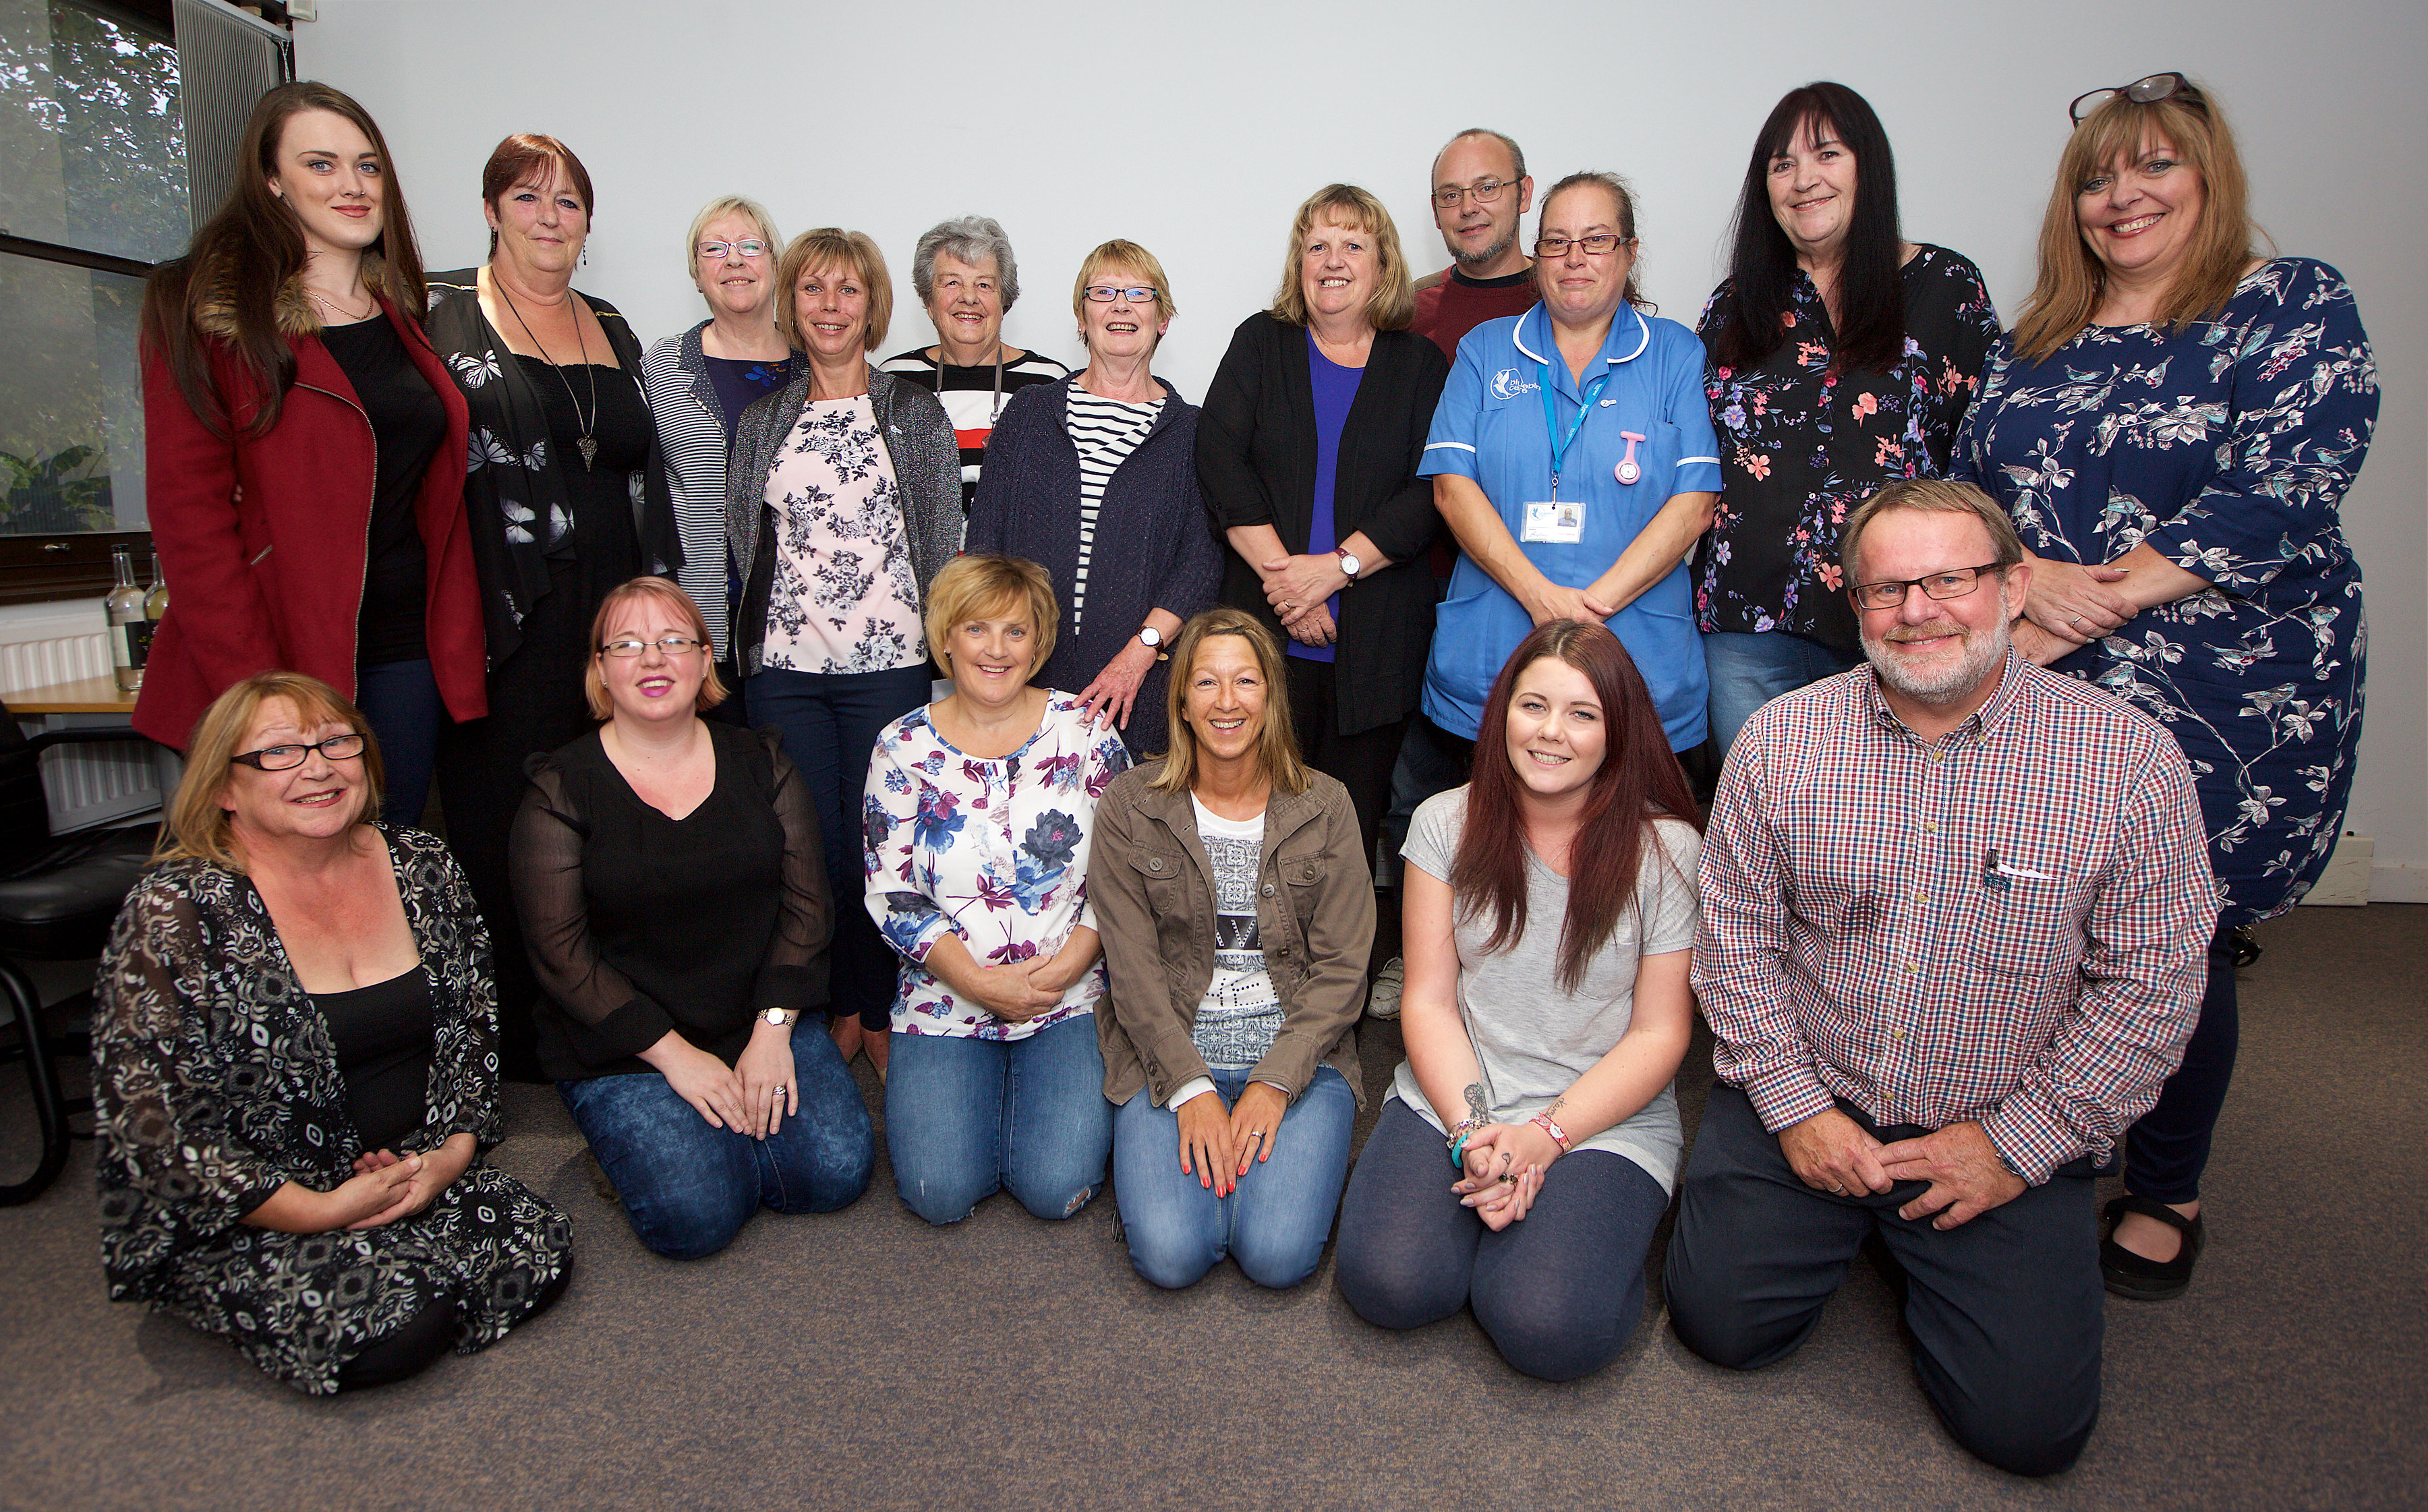 Care at home company rewards loyal staff